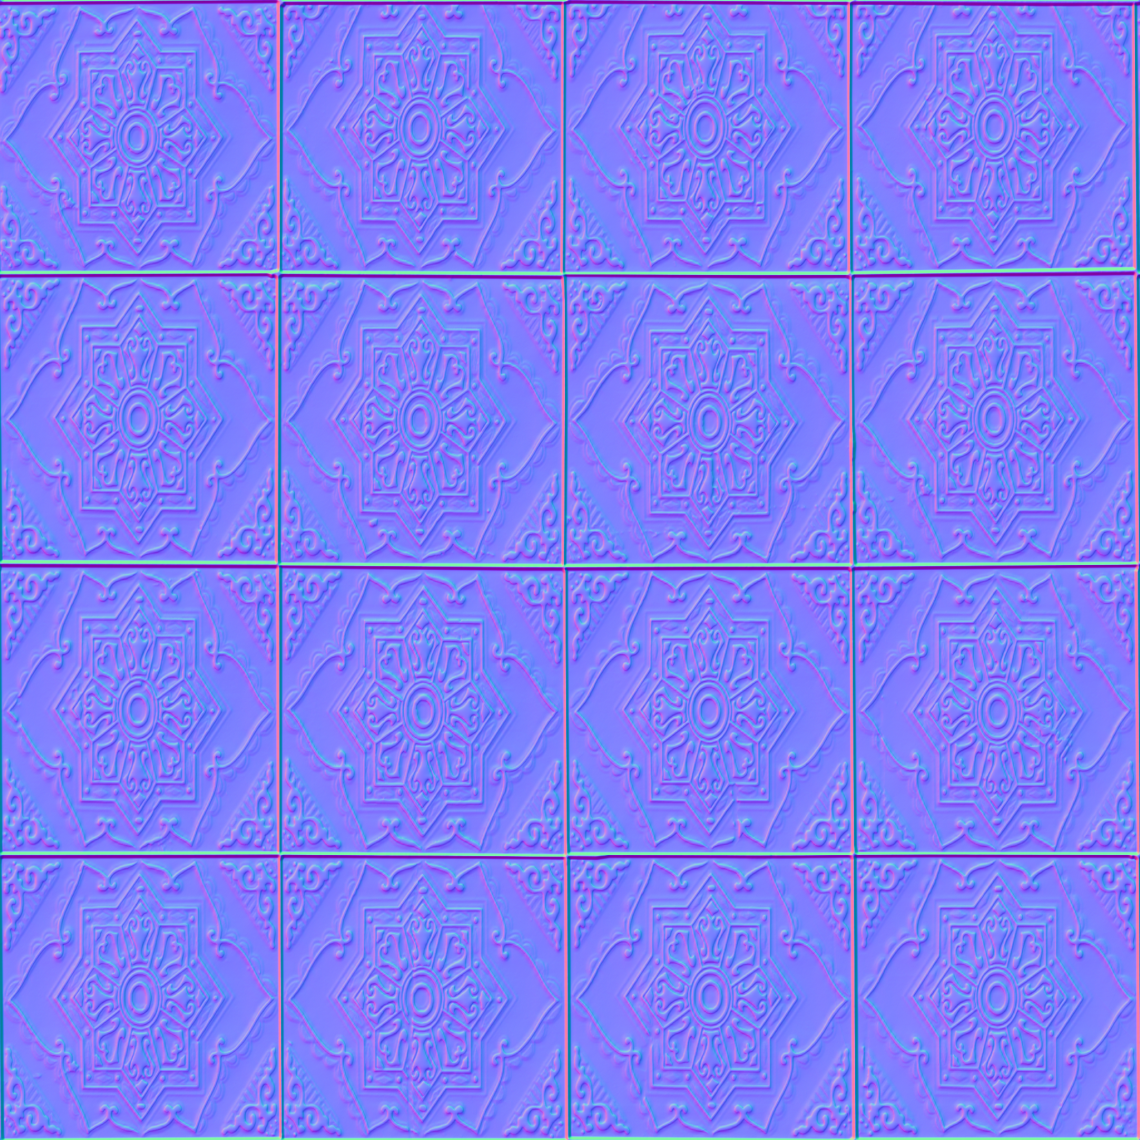 Ornate-Tiles-01-Normal - Seamless